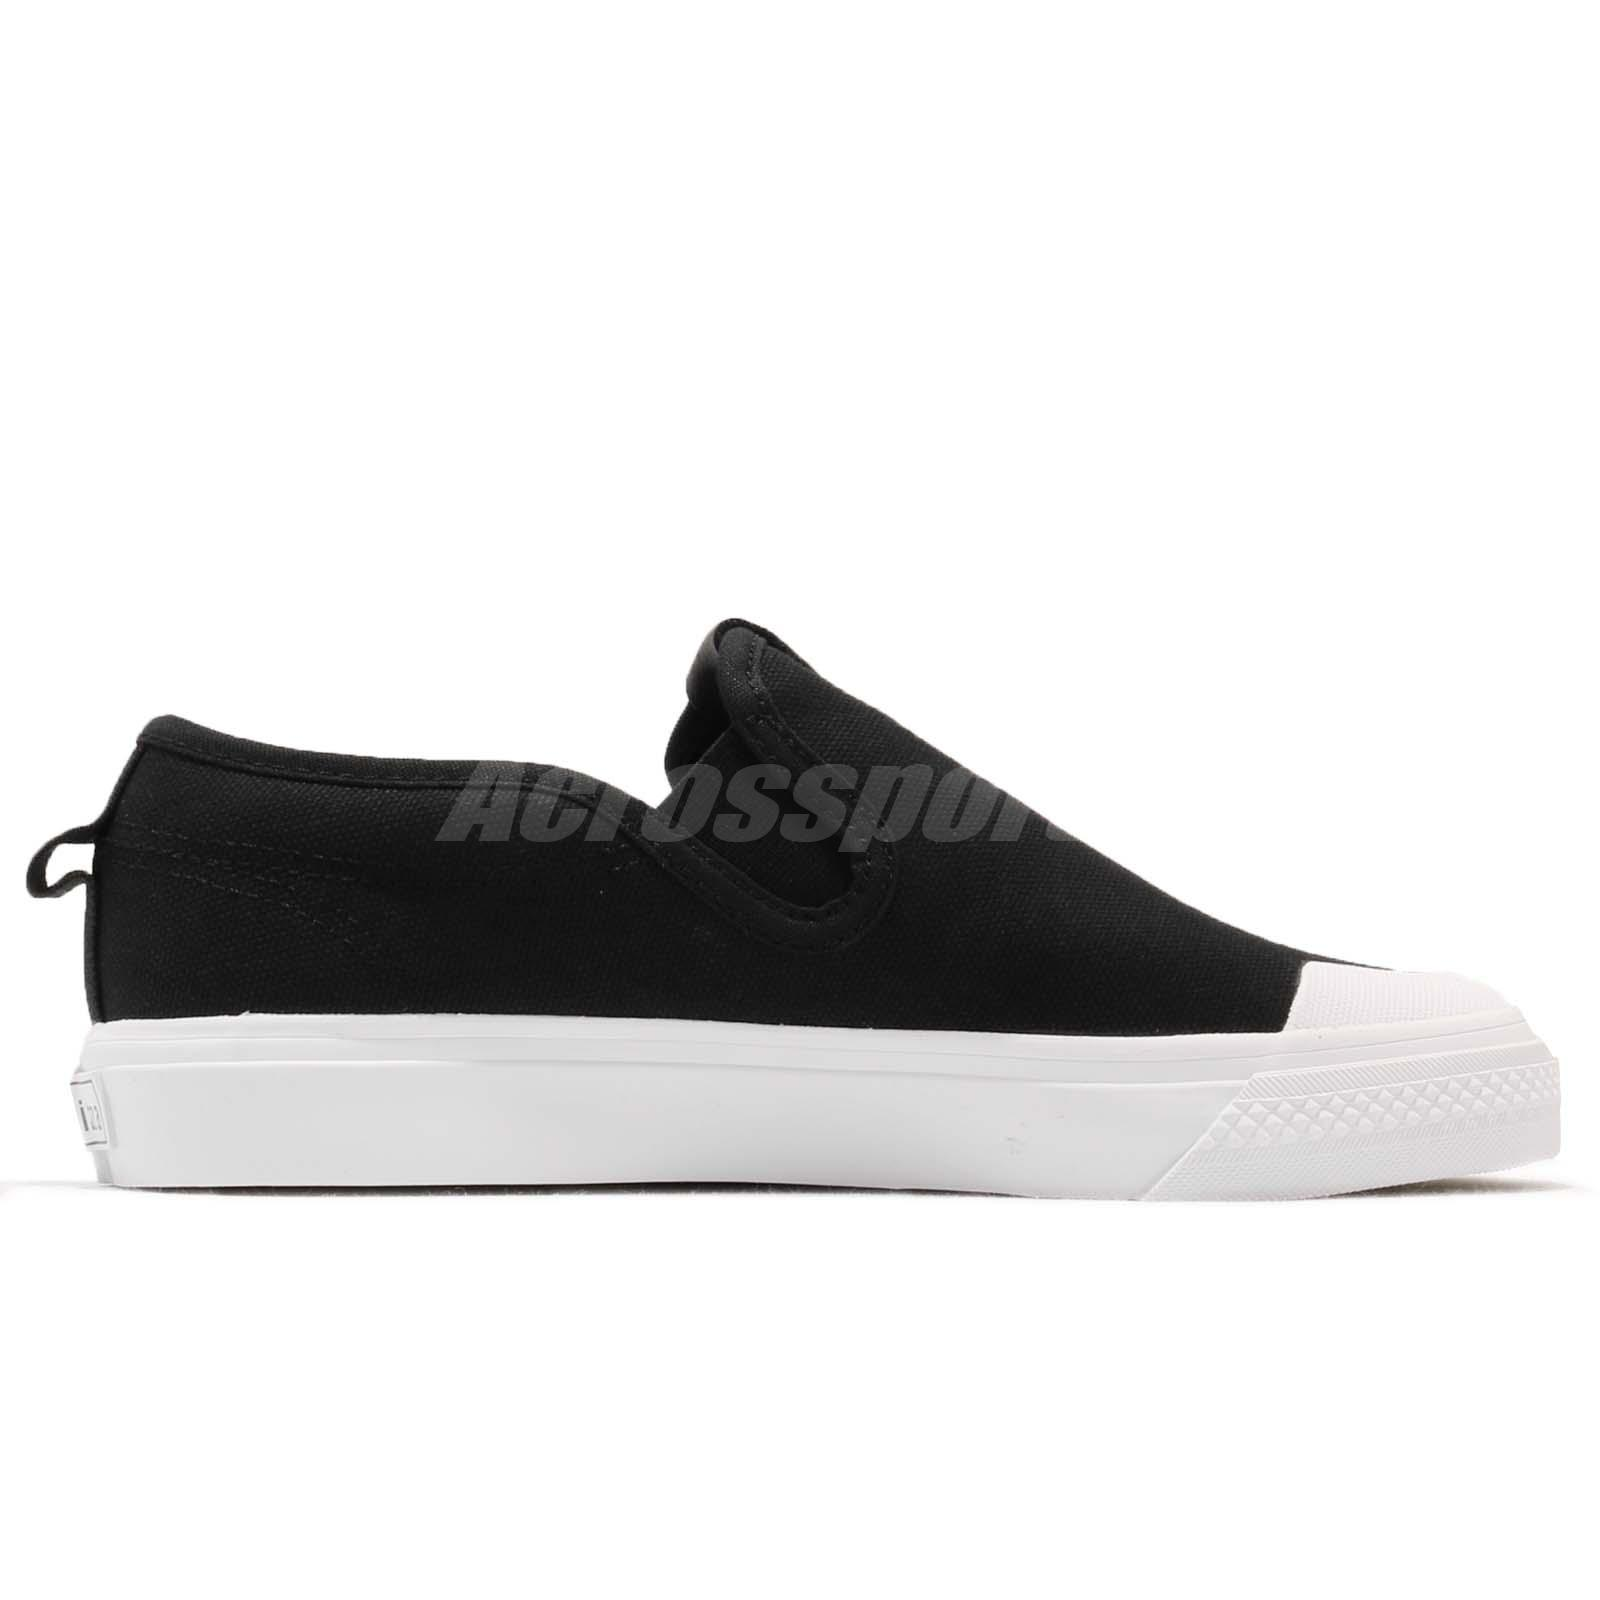 adidas Originals Nizza Slipon W Black White Women Slip On Casual ... 001af1f808d9b